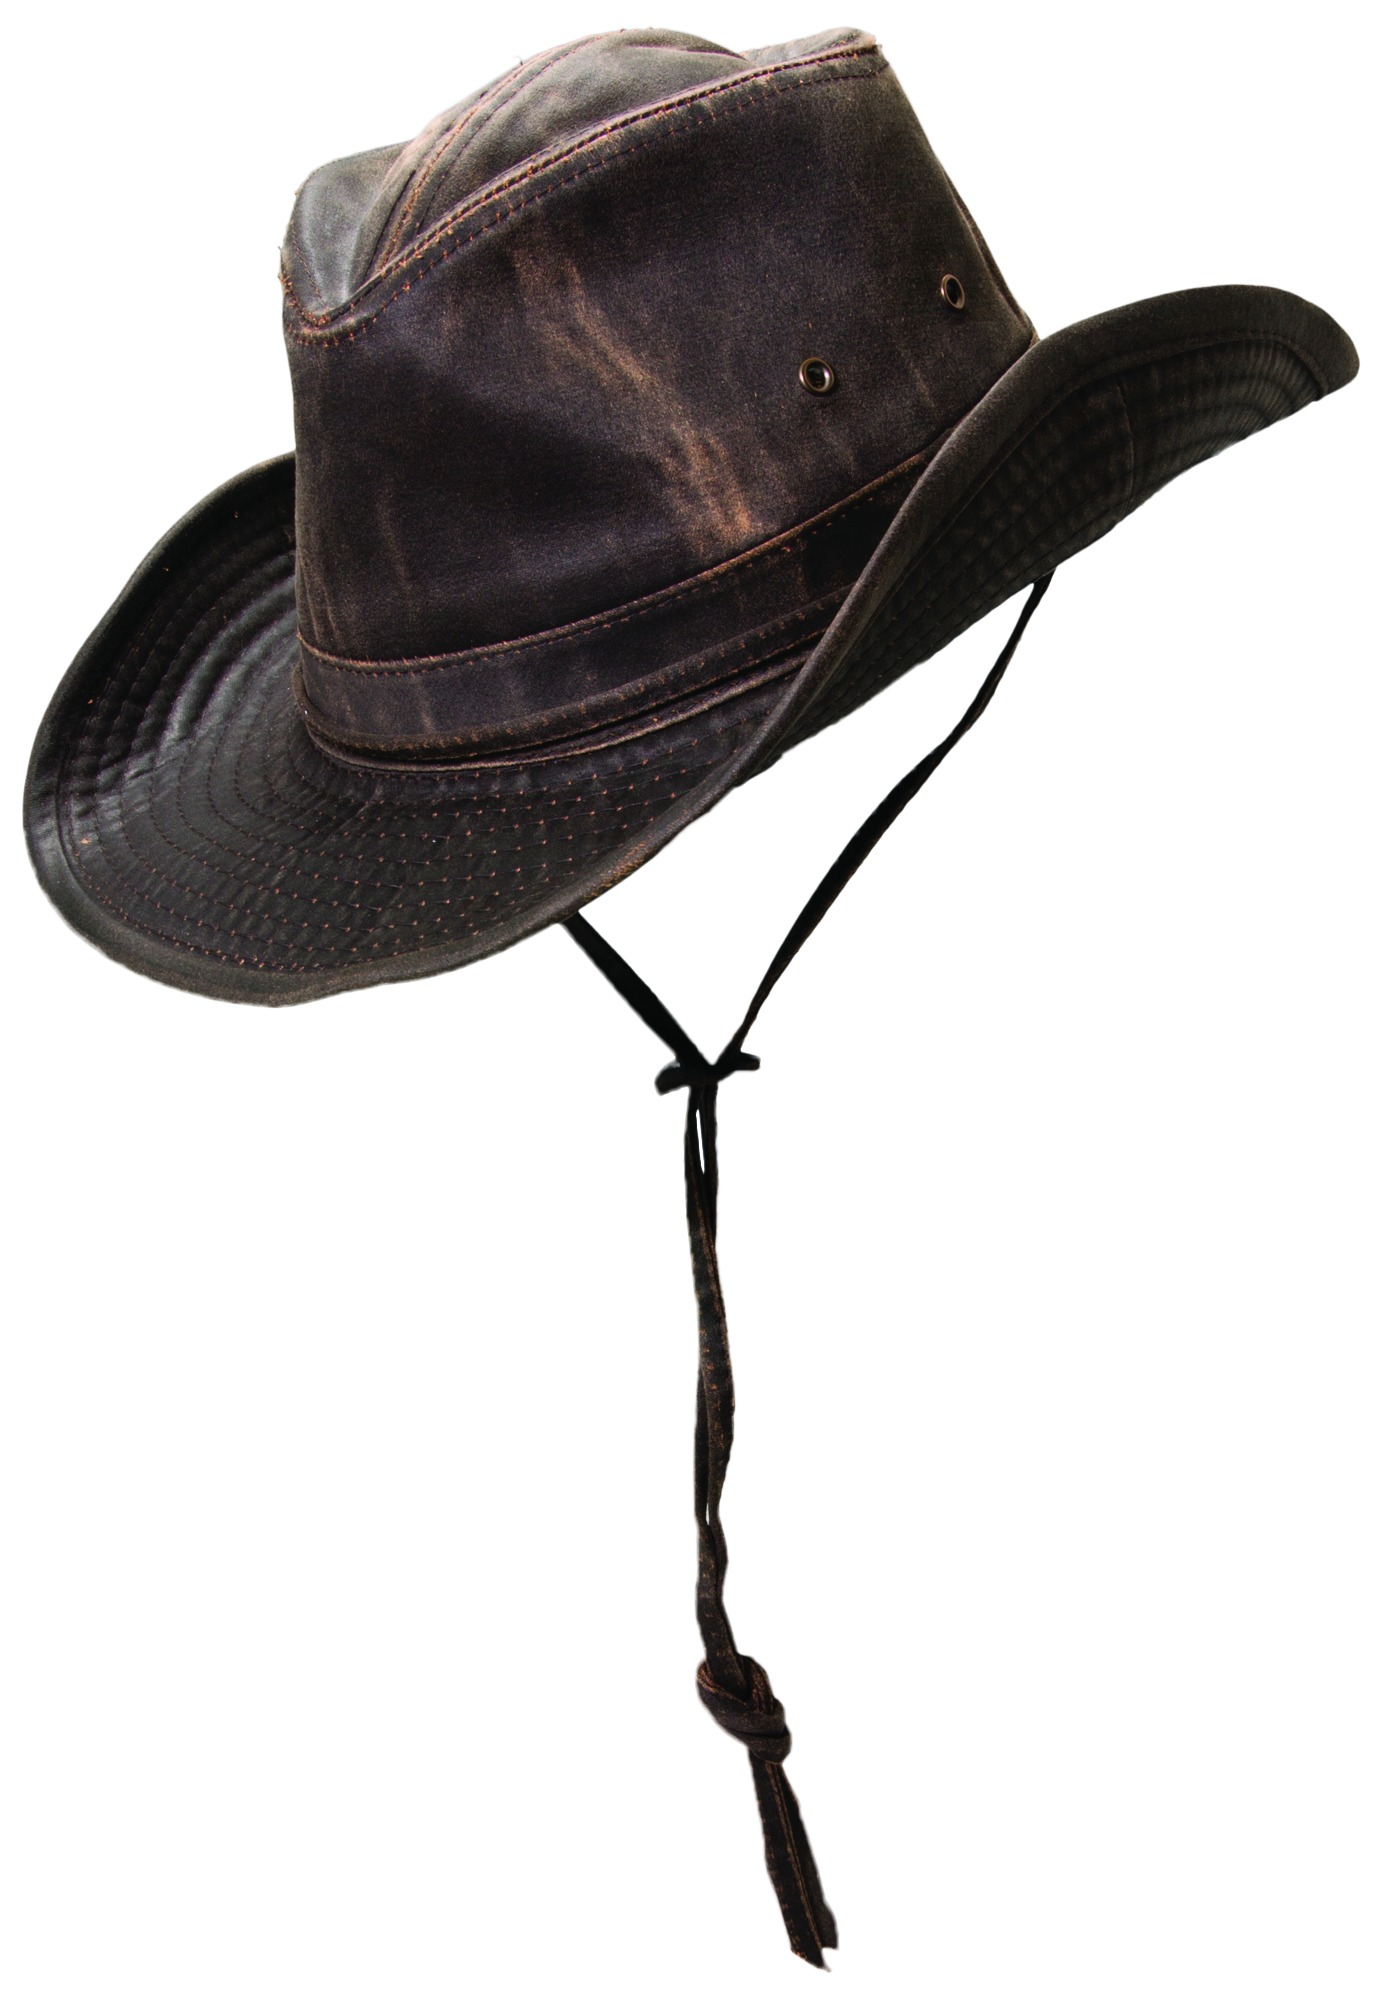 da0c35762e6419 Weathered Cotton Outback Hat with Eyelets and Strap | Explorer Hats